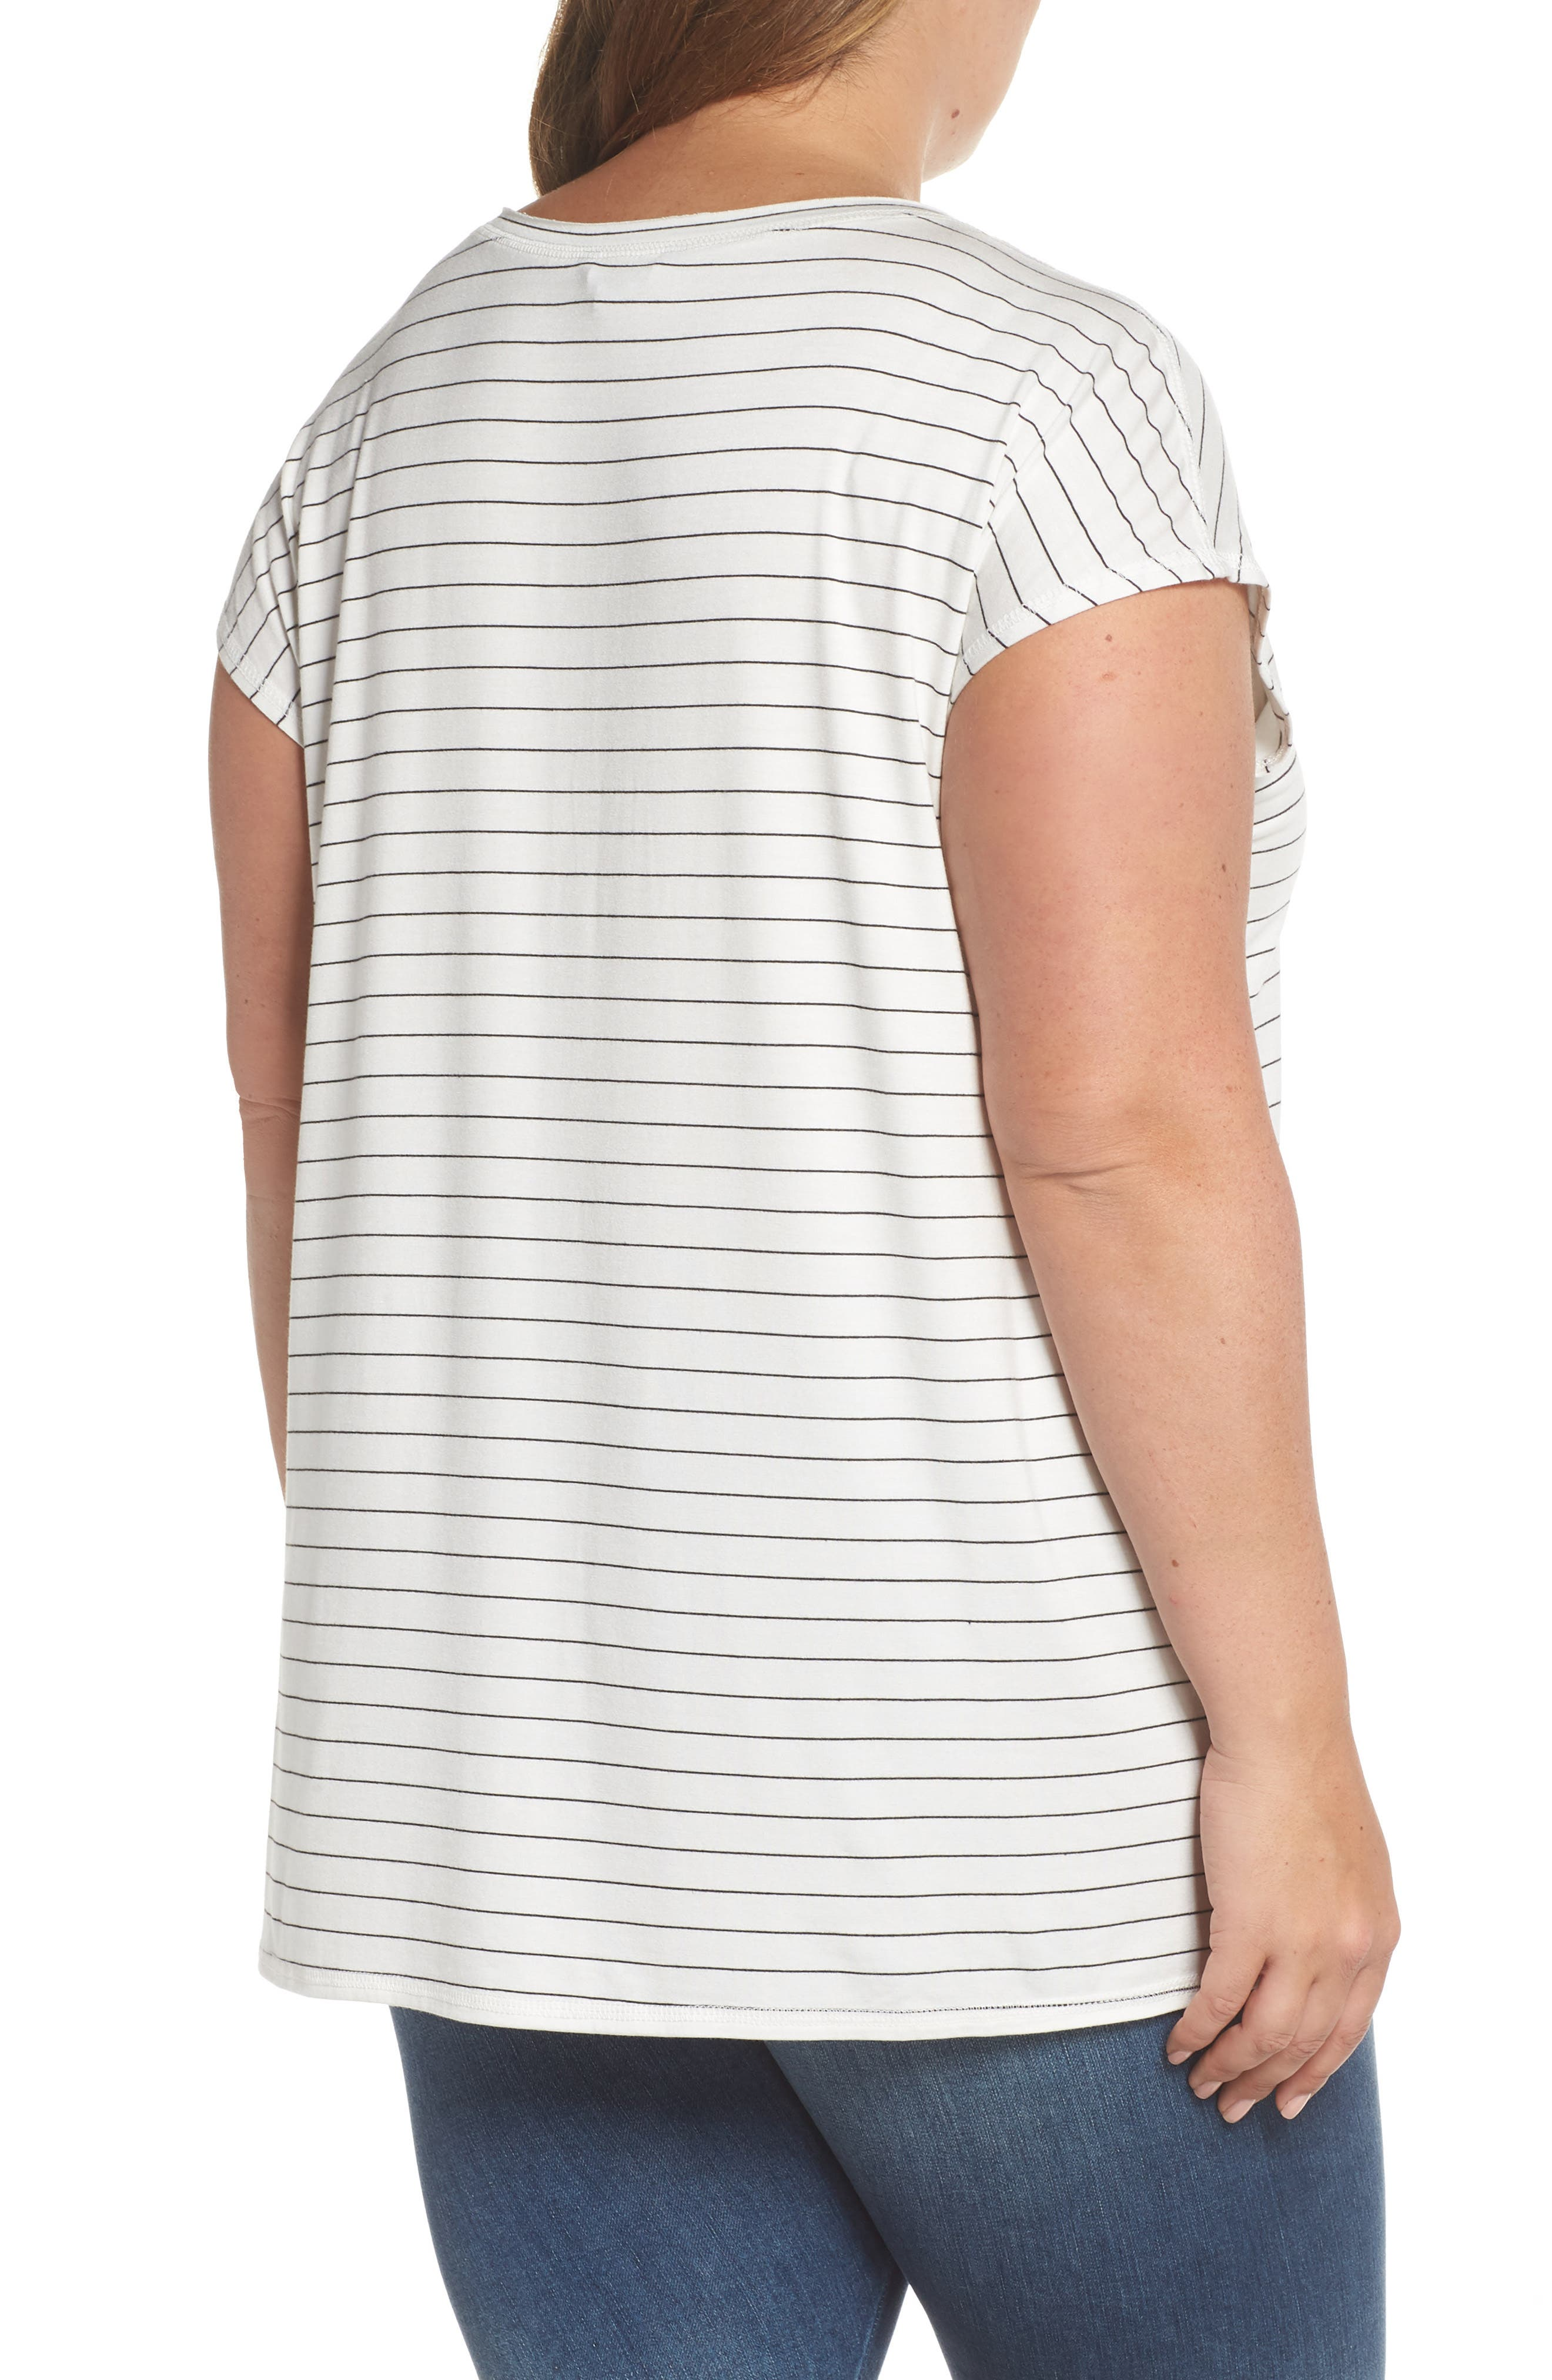 Off-Duty Stretch Knit Top,                             Alternate thumbnail 2, color,                             001